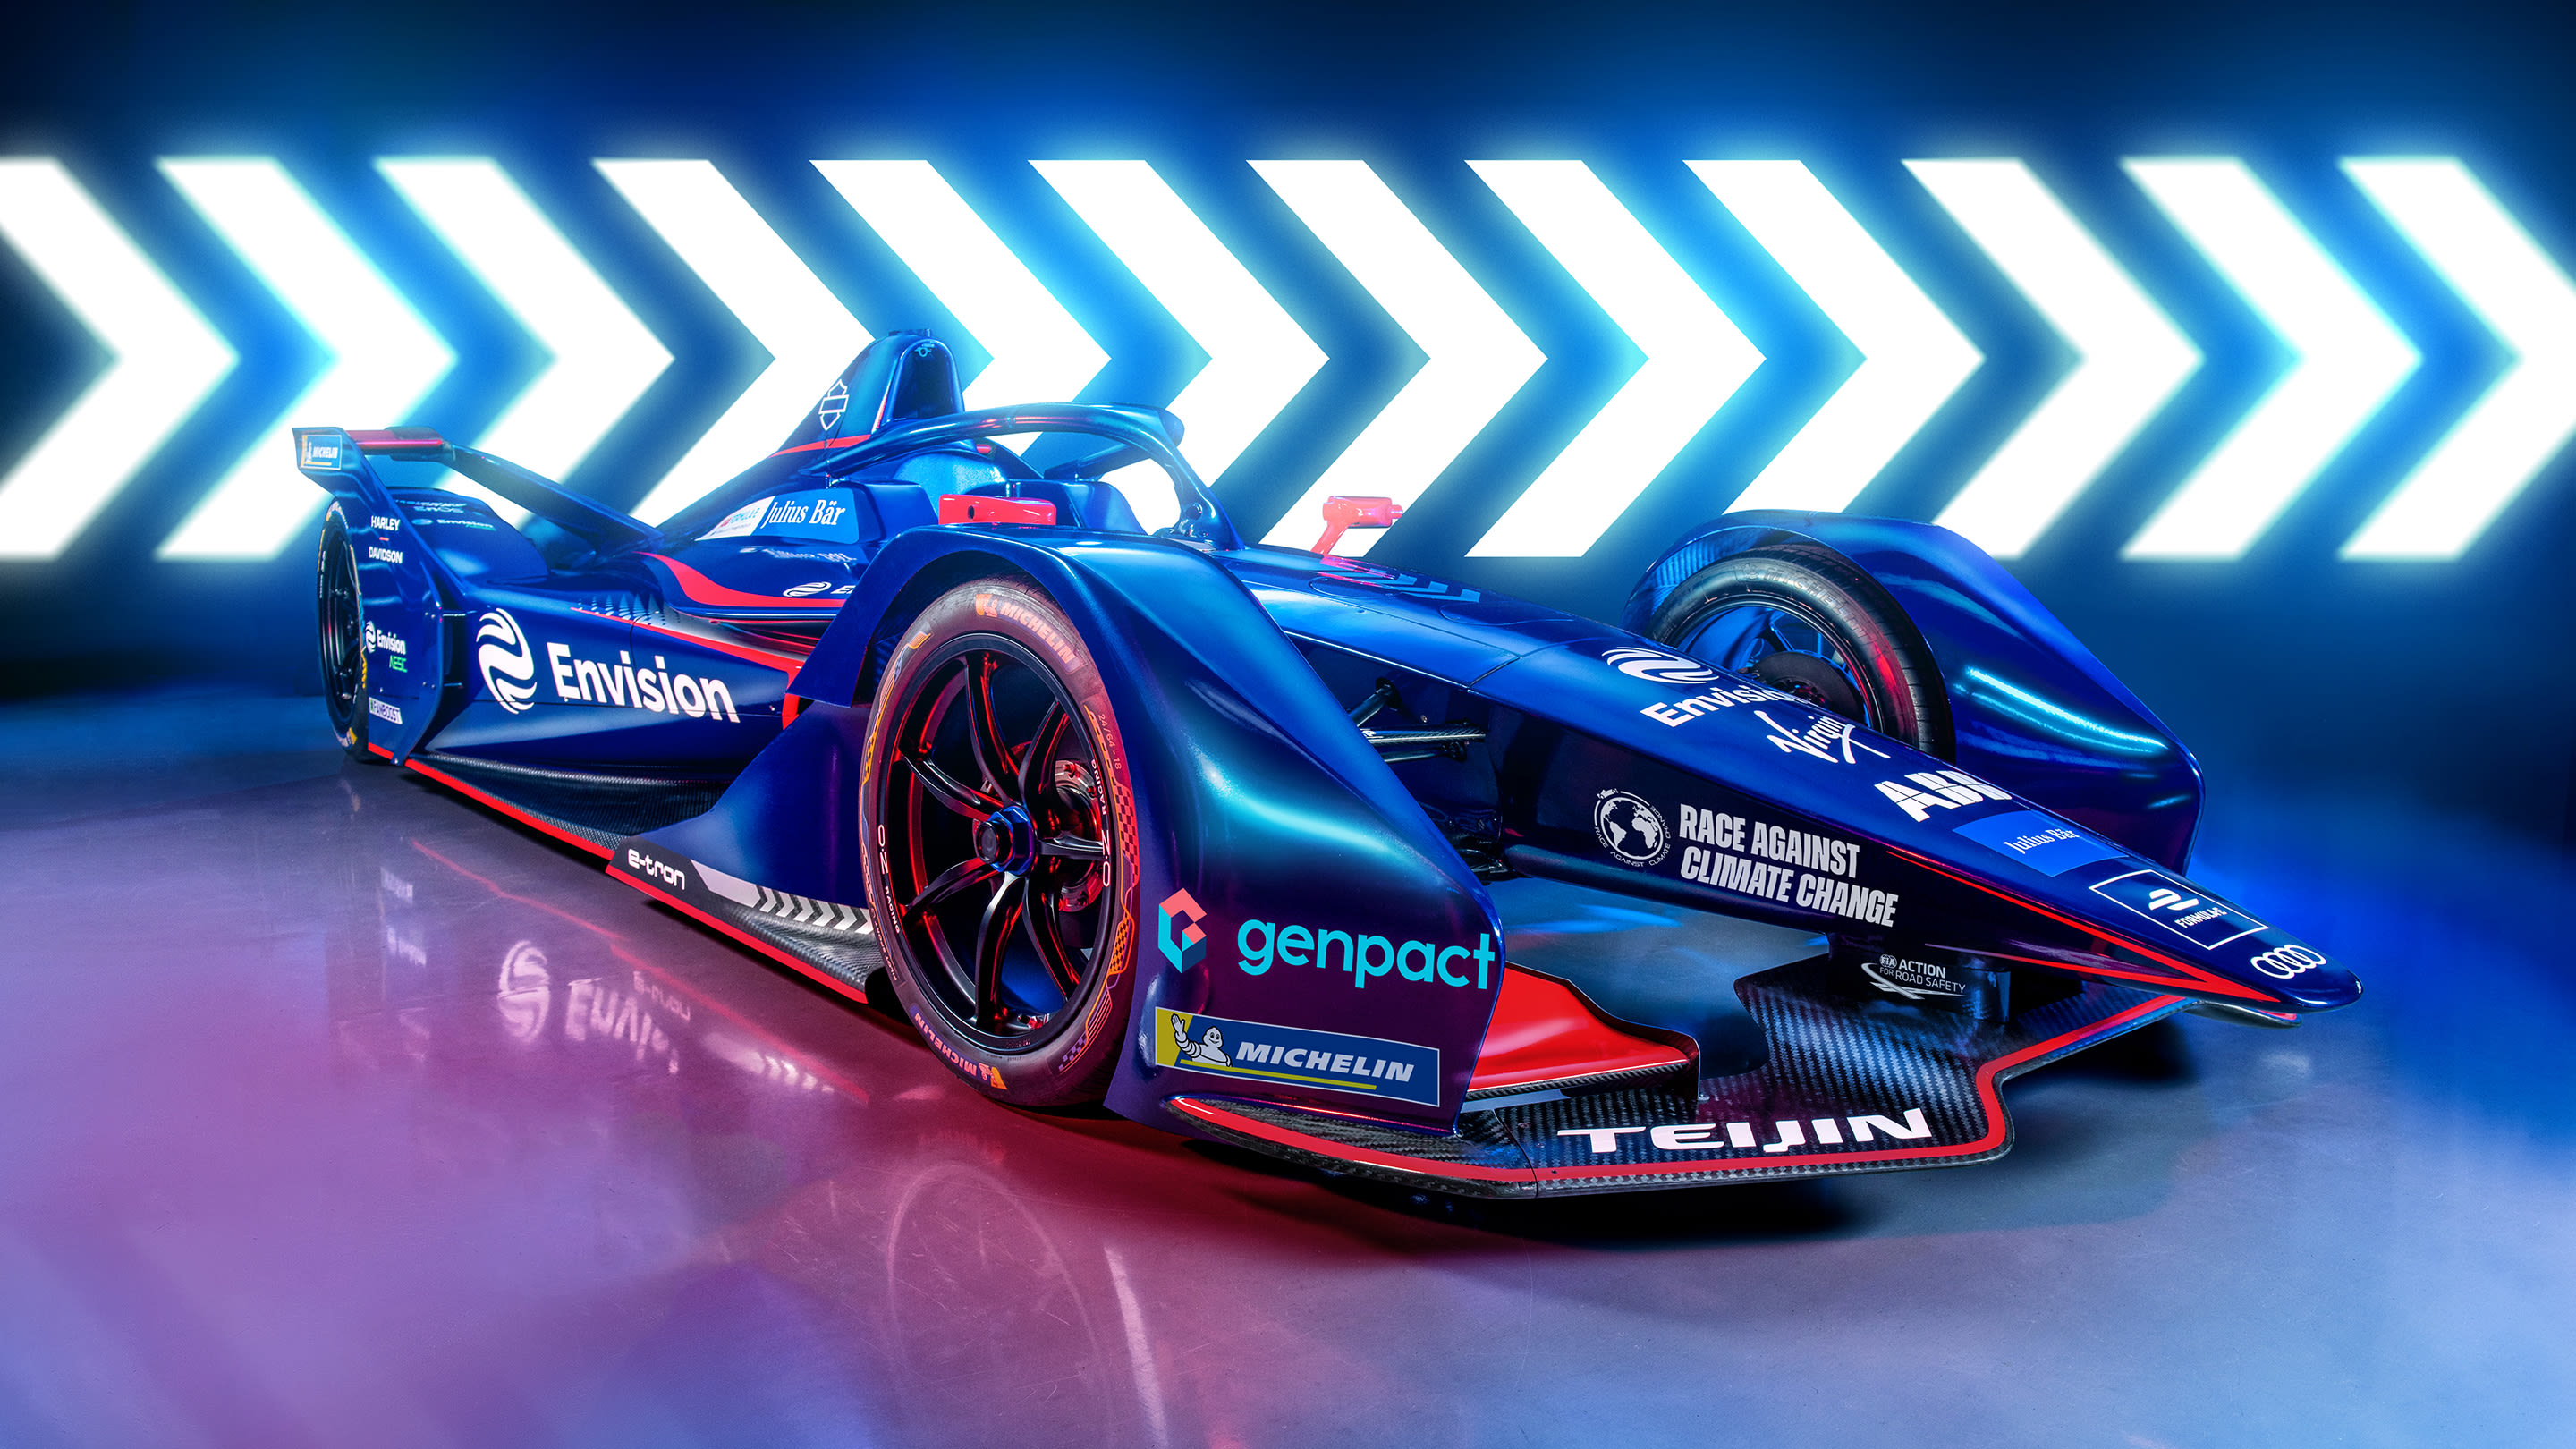 Graphic of the Envision Virgin Racing S7 car